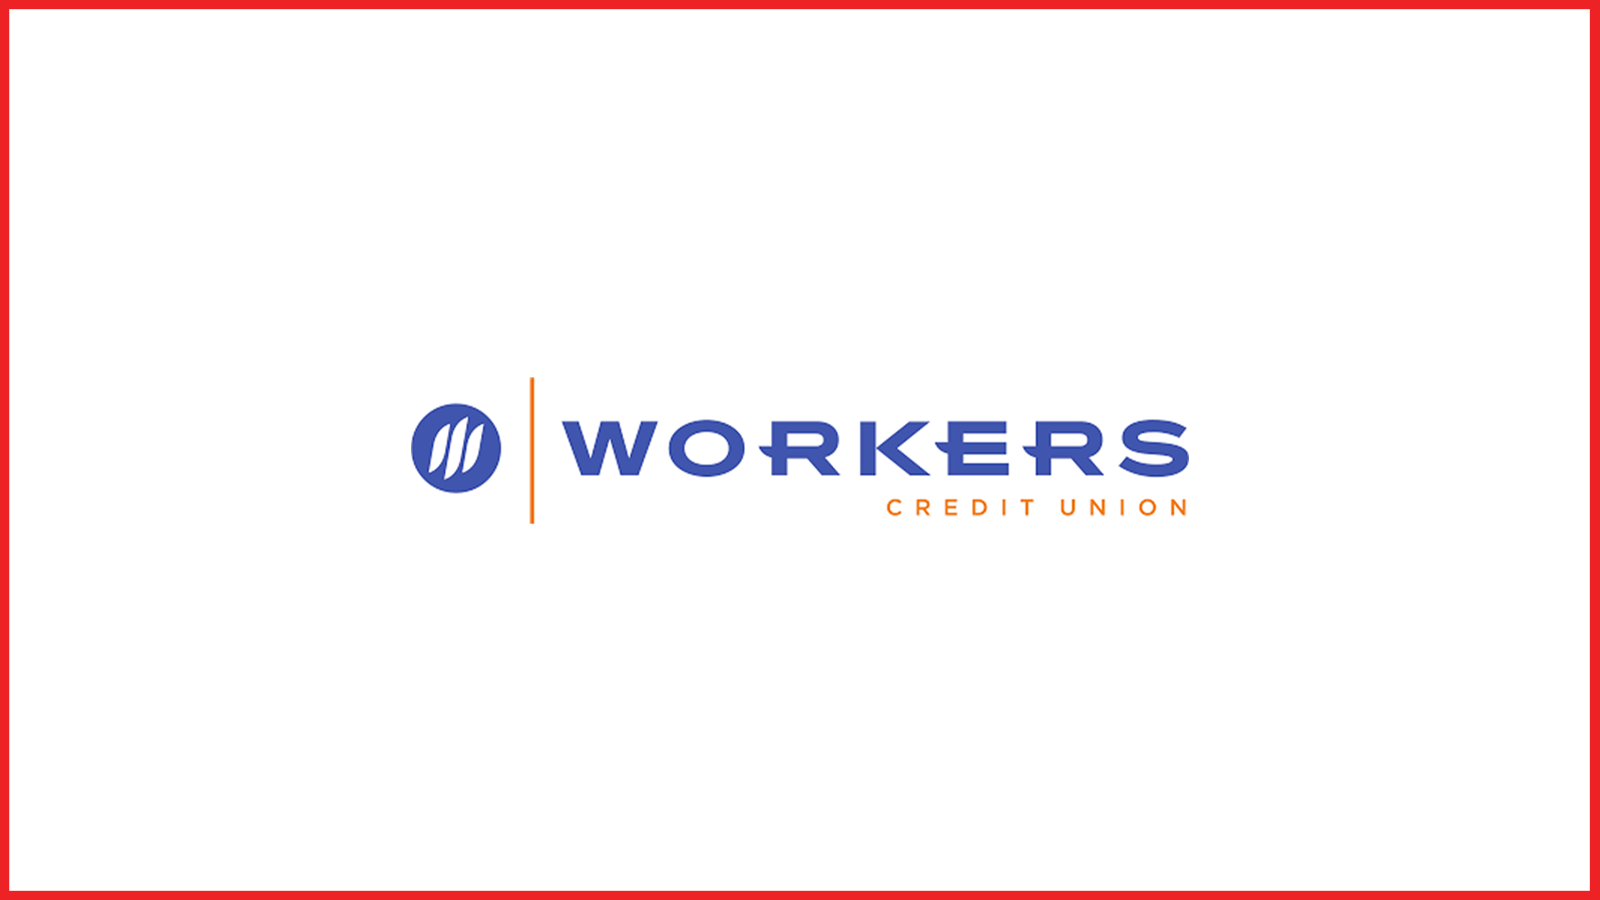 workers credit union logo with red border